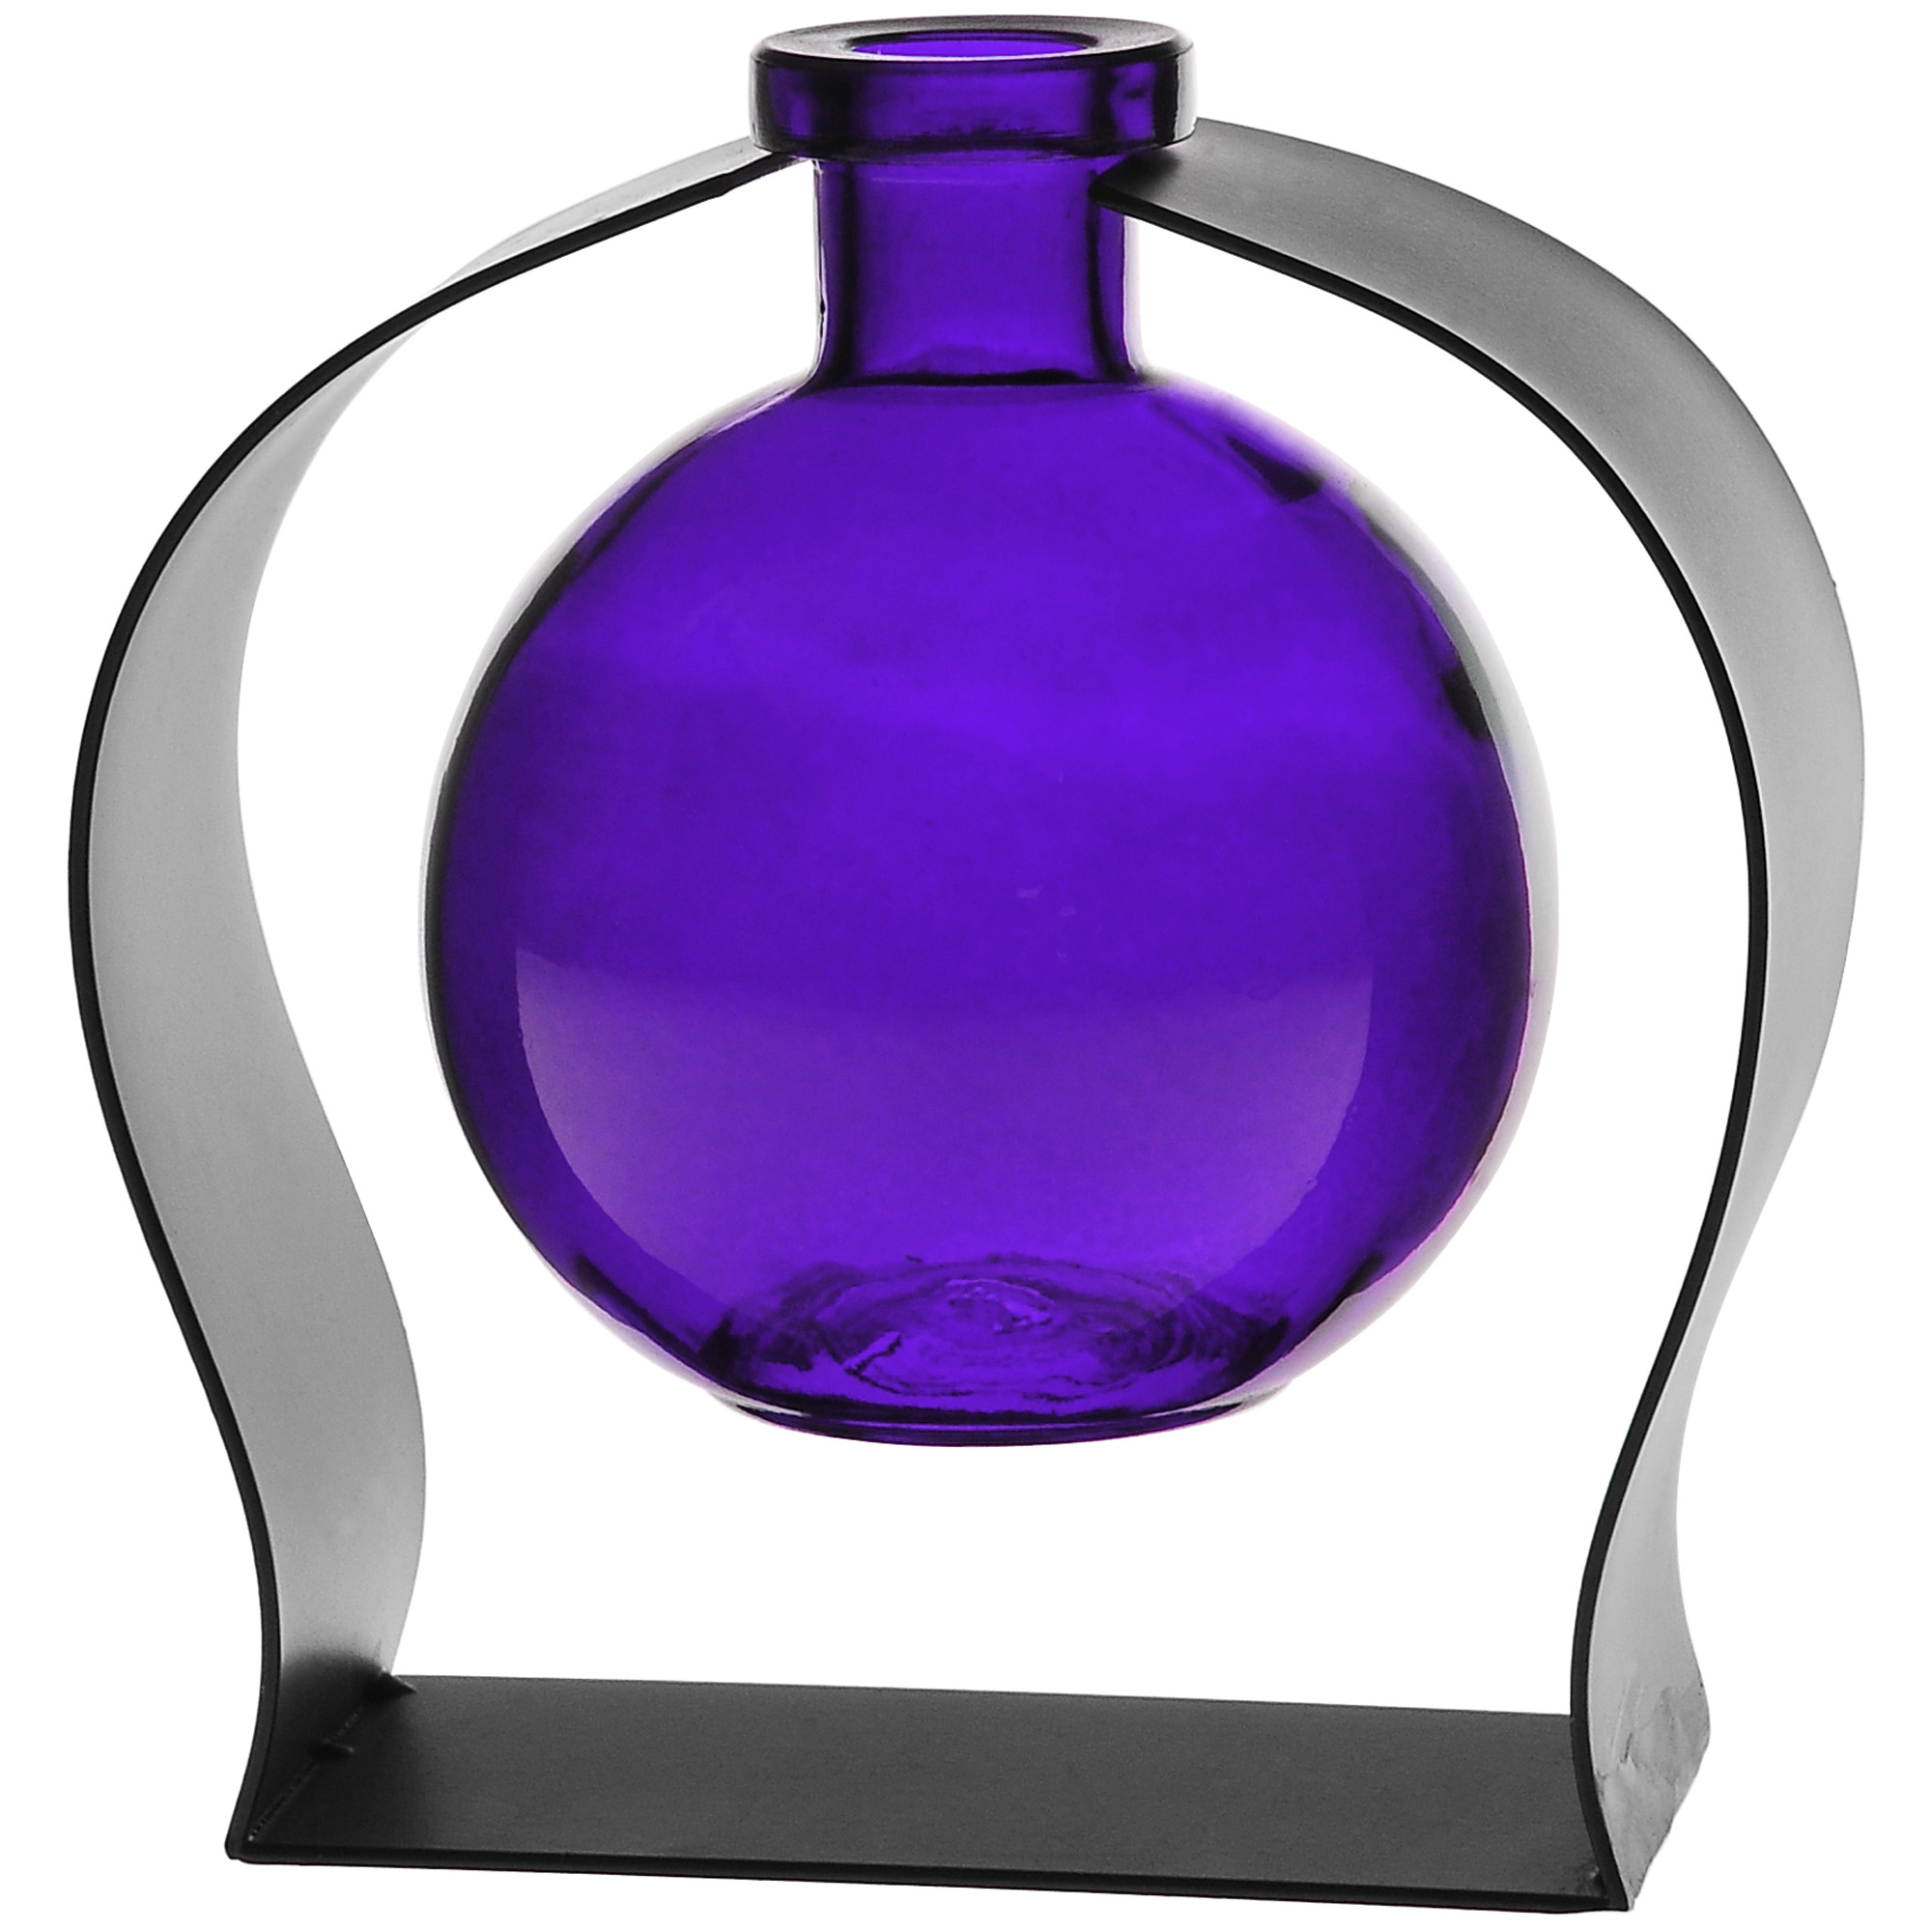 Couronne Co Ball Recycled Glass Vase and Arched Metal Stand. M244-200-00-P. 6 inches tall. 8.5 ounces. Clear - Walmart.com